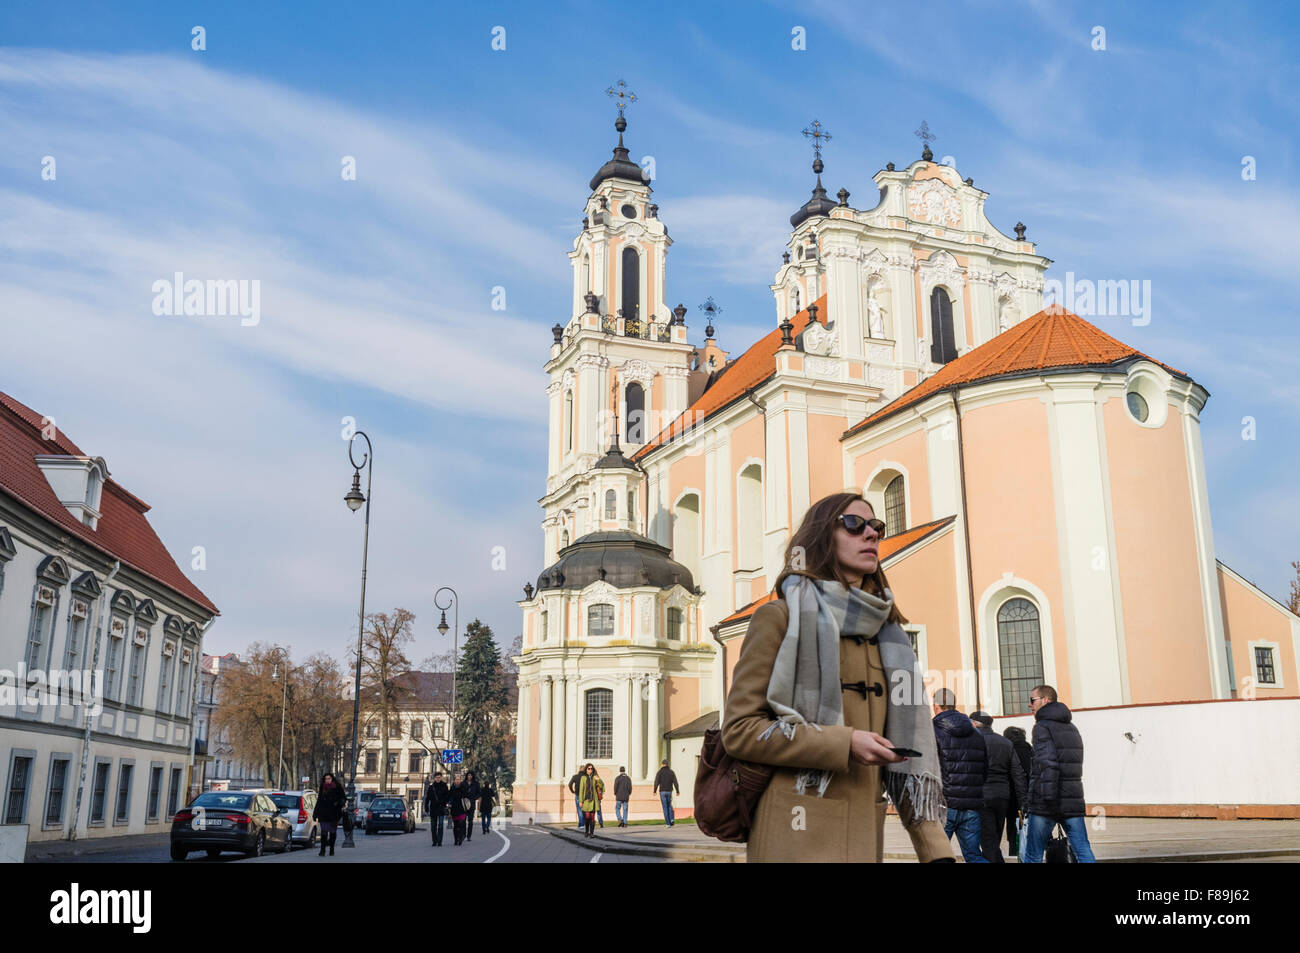 A woman walks past the Church of St. Catherine. Vilnius, Lithuania, Europe - Stock Image